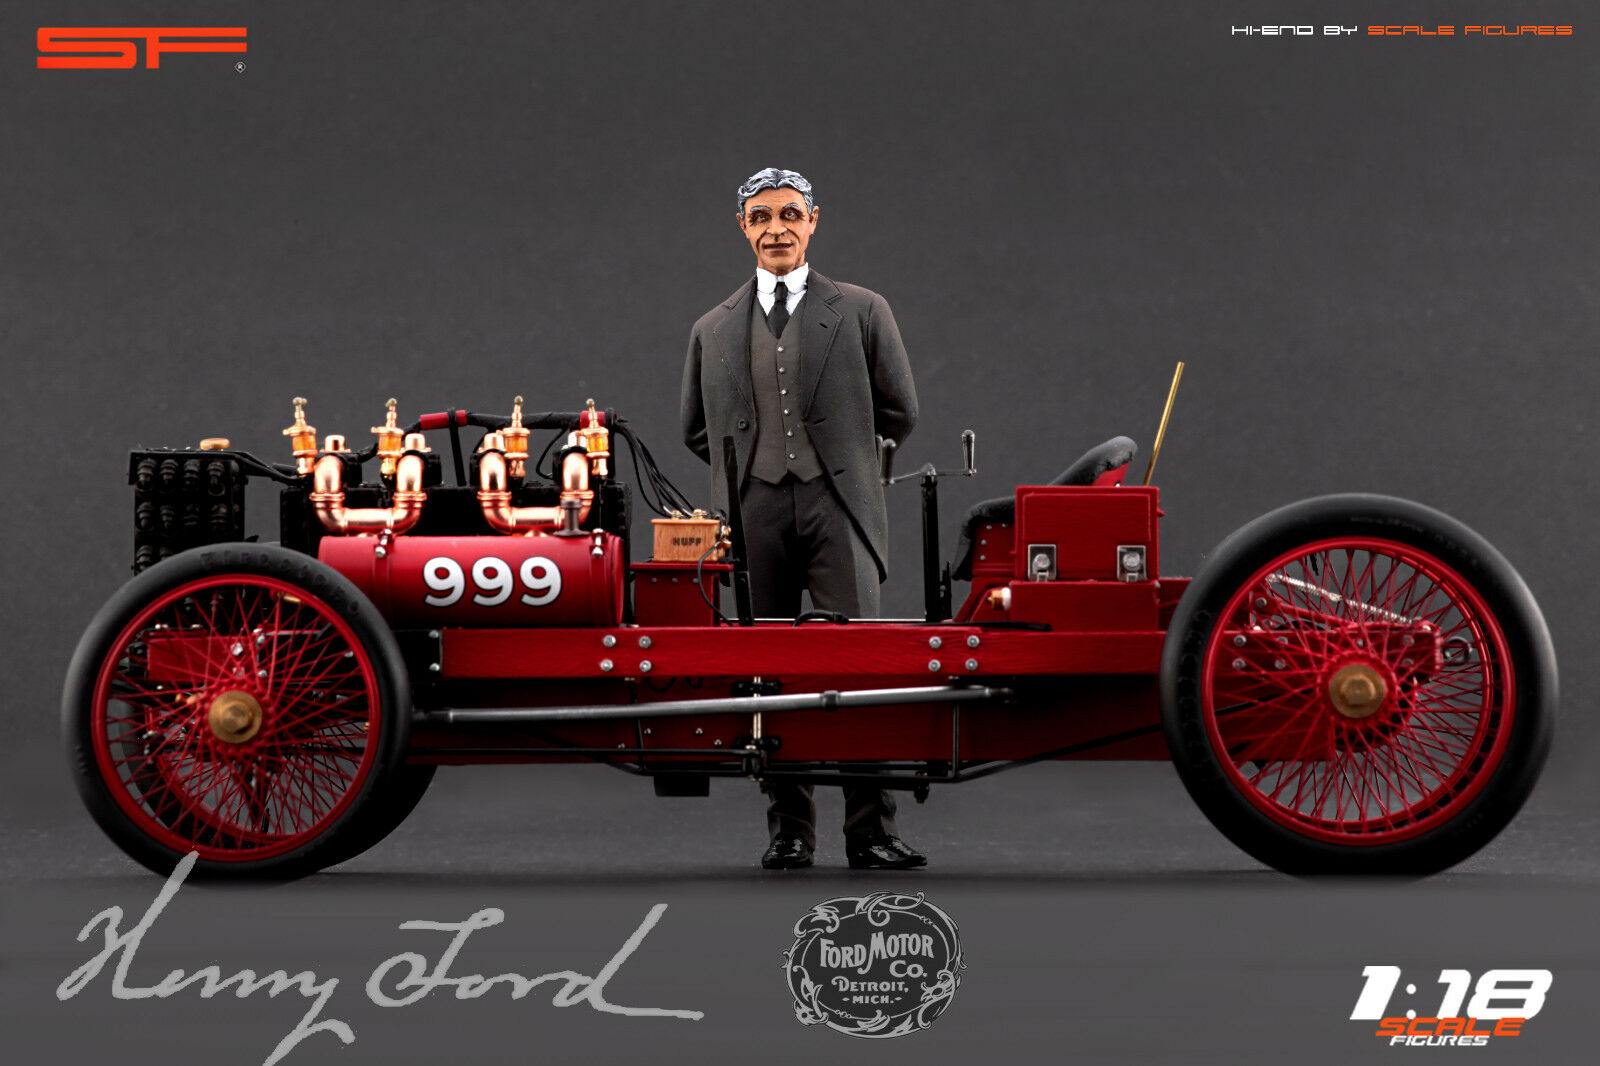 1 1 1 18 Henry Ford VERY RARE    figurine NO CARS    for diecast collectors a6e76d